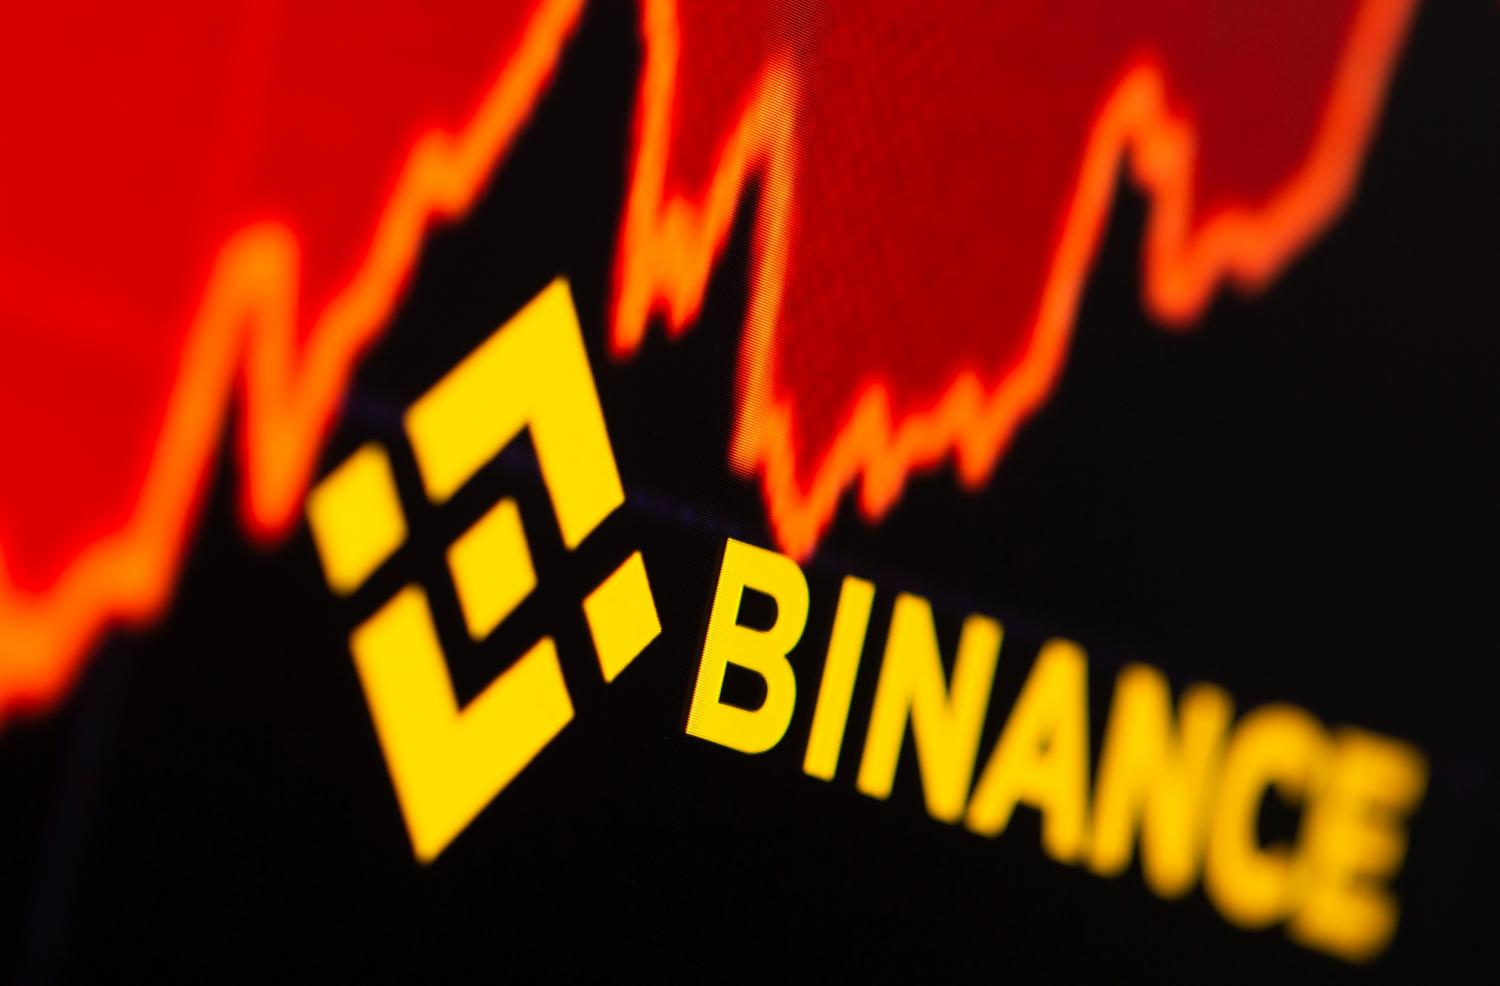 Binance faces regulatory challenges in several countries.